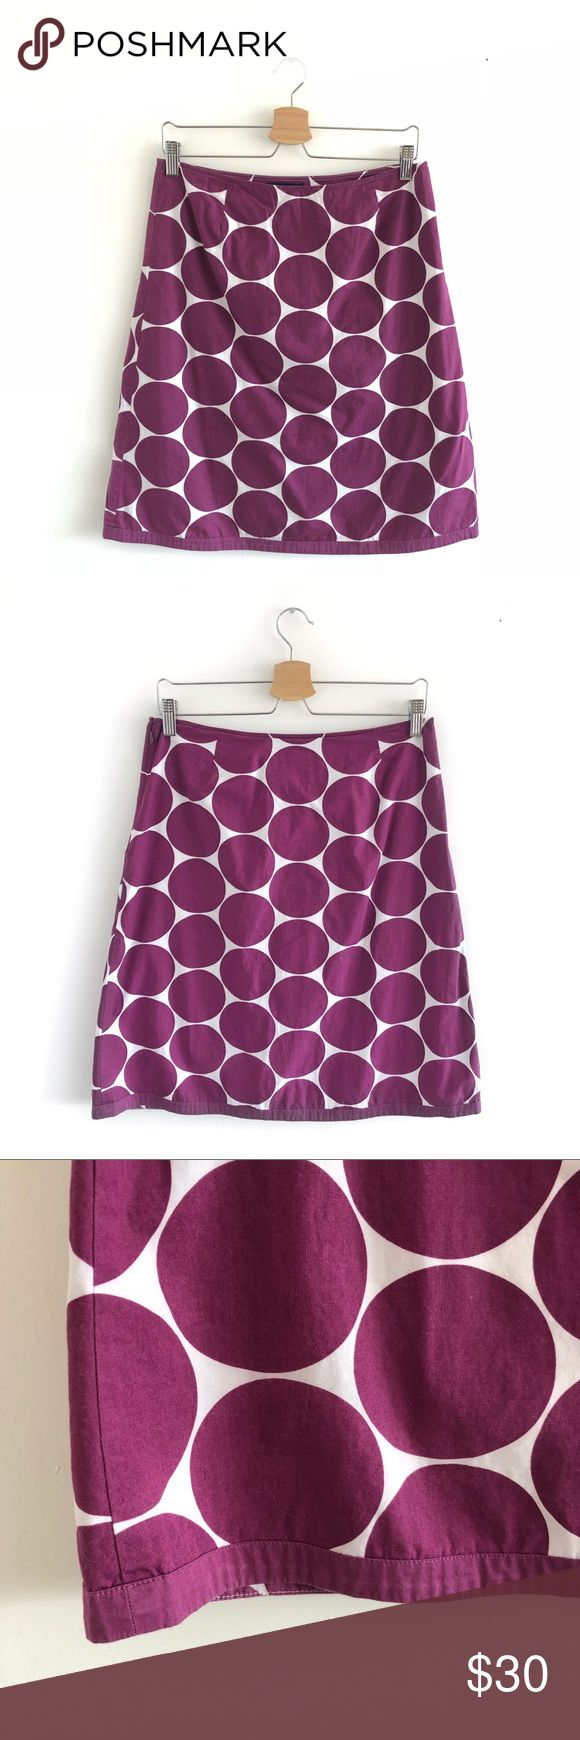 "Boden Purple Polka Dot Cotton A Line Skirt Size 12 ADORABLE Boden Purple Polka Dot Cotton A Line Skirt. Size 12. Excellent Used Condition. No visible flaws. SO CUTE! Fully lined. Side zipper and hook eye closure. Shell: 100% Cotton. Lining: 100% Cotton. Machine wash. Tumble dry low. Waist: 15"". Length: 22"". Boden Skirts Midi"